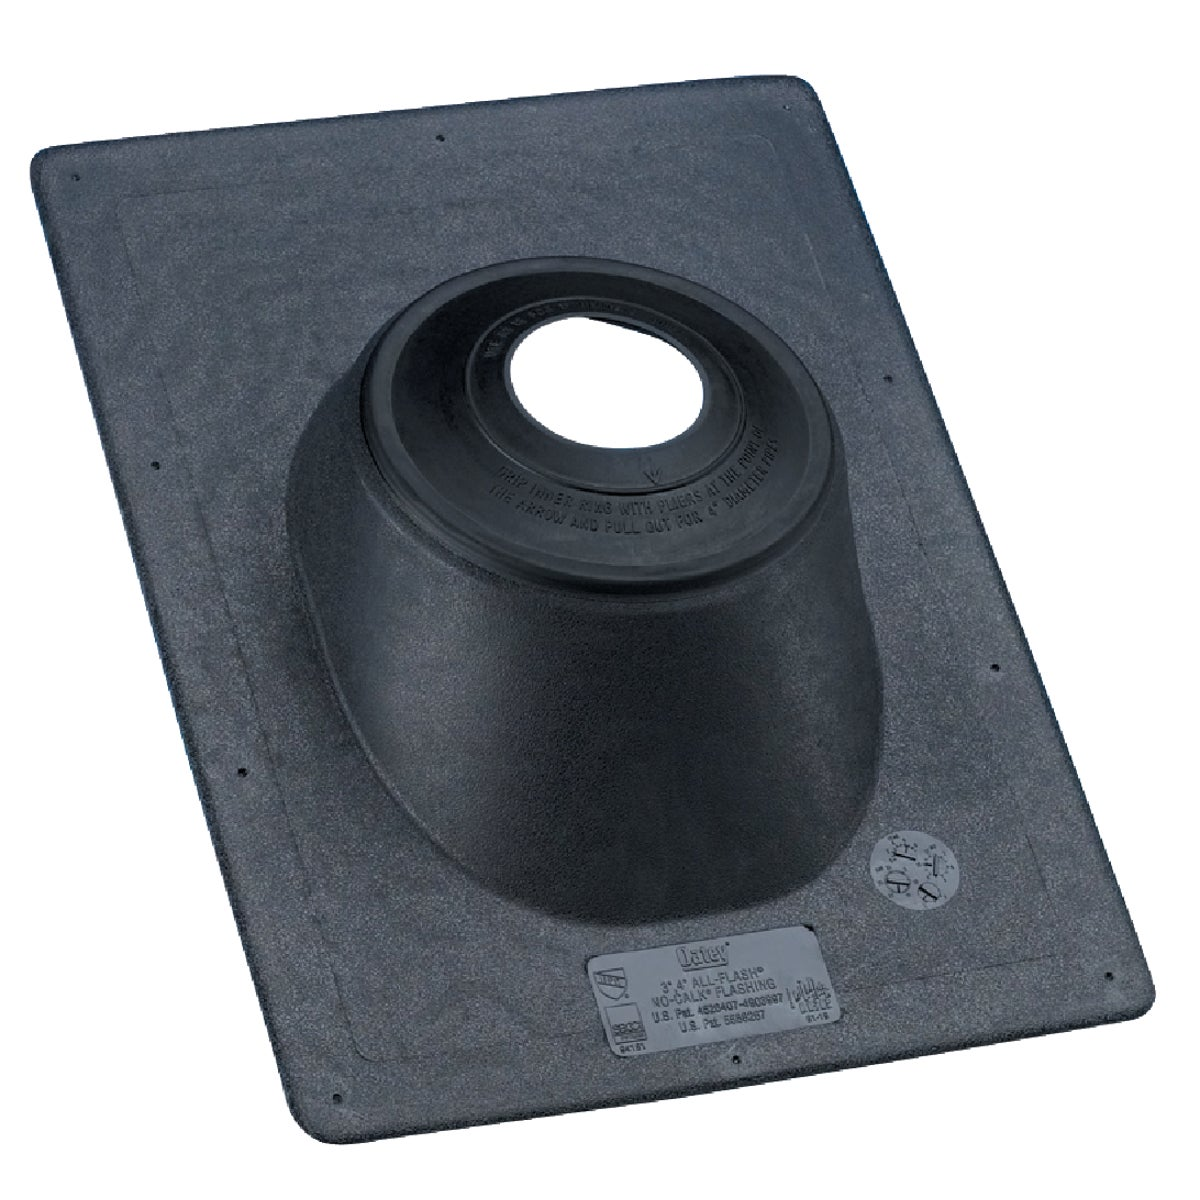 "3"" PLASTIC ROOF FLASHING - 11890 by Oatey Scs"